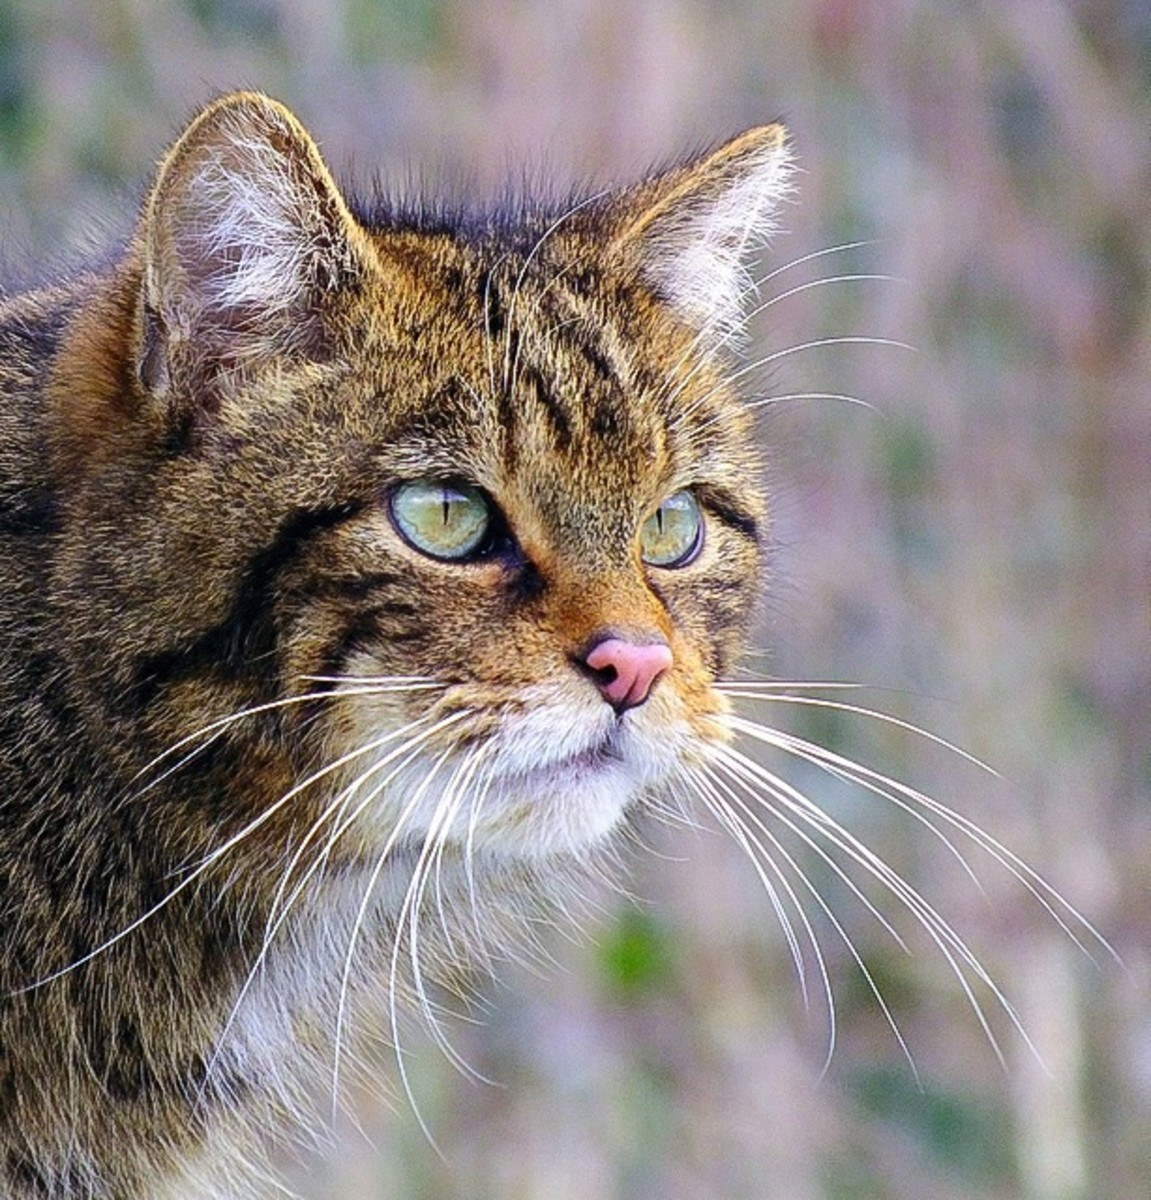 A beautiful Scottish wildcat